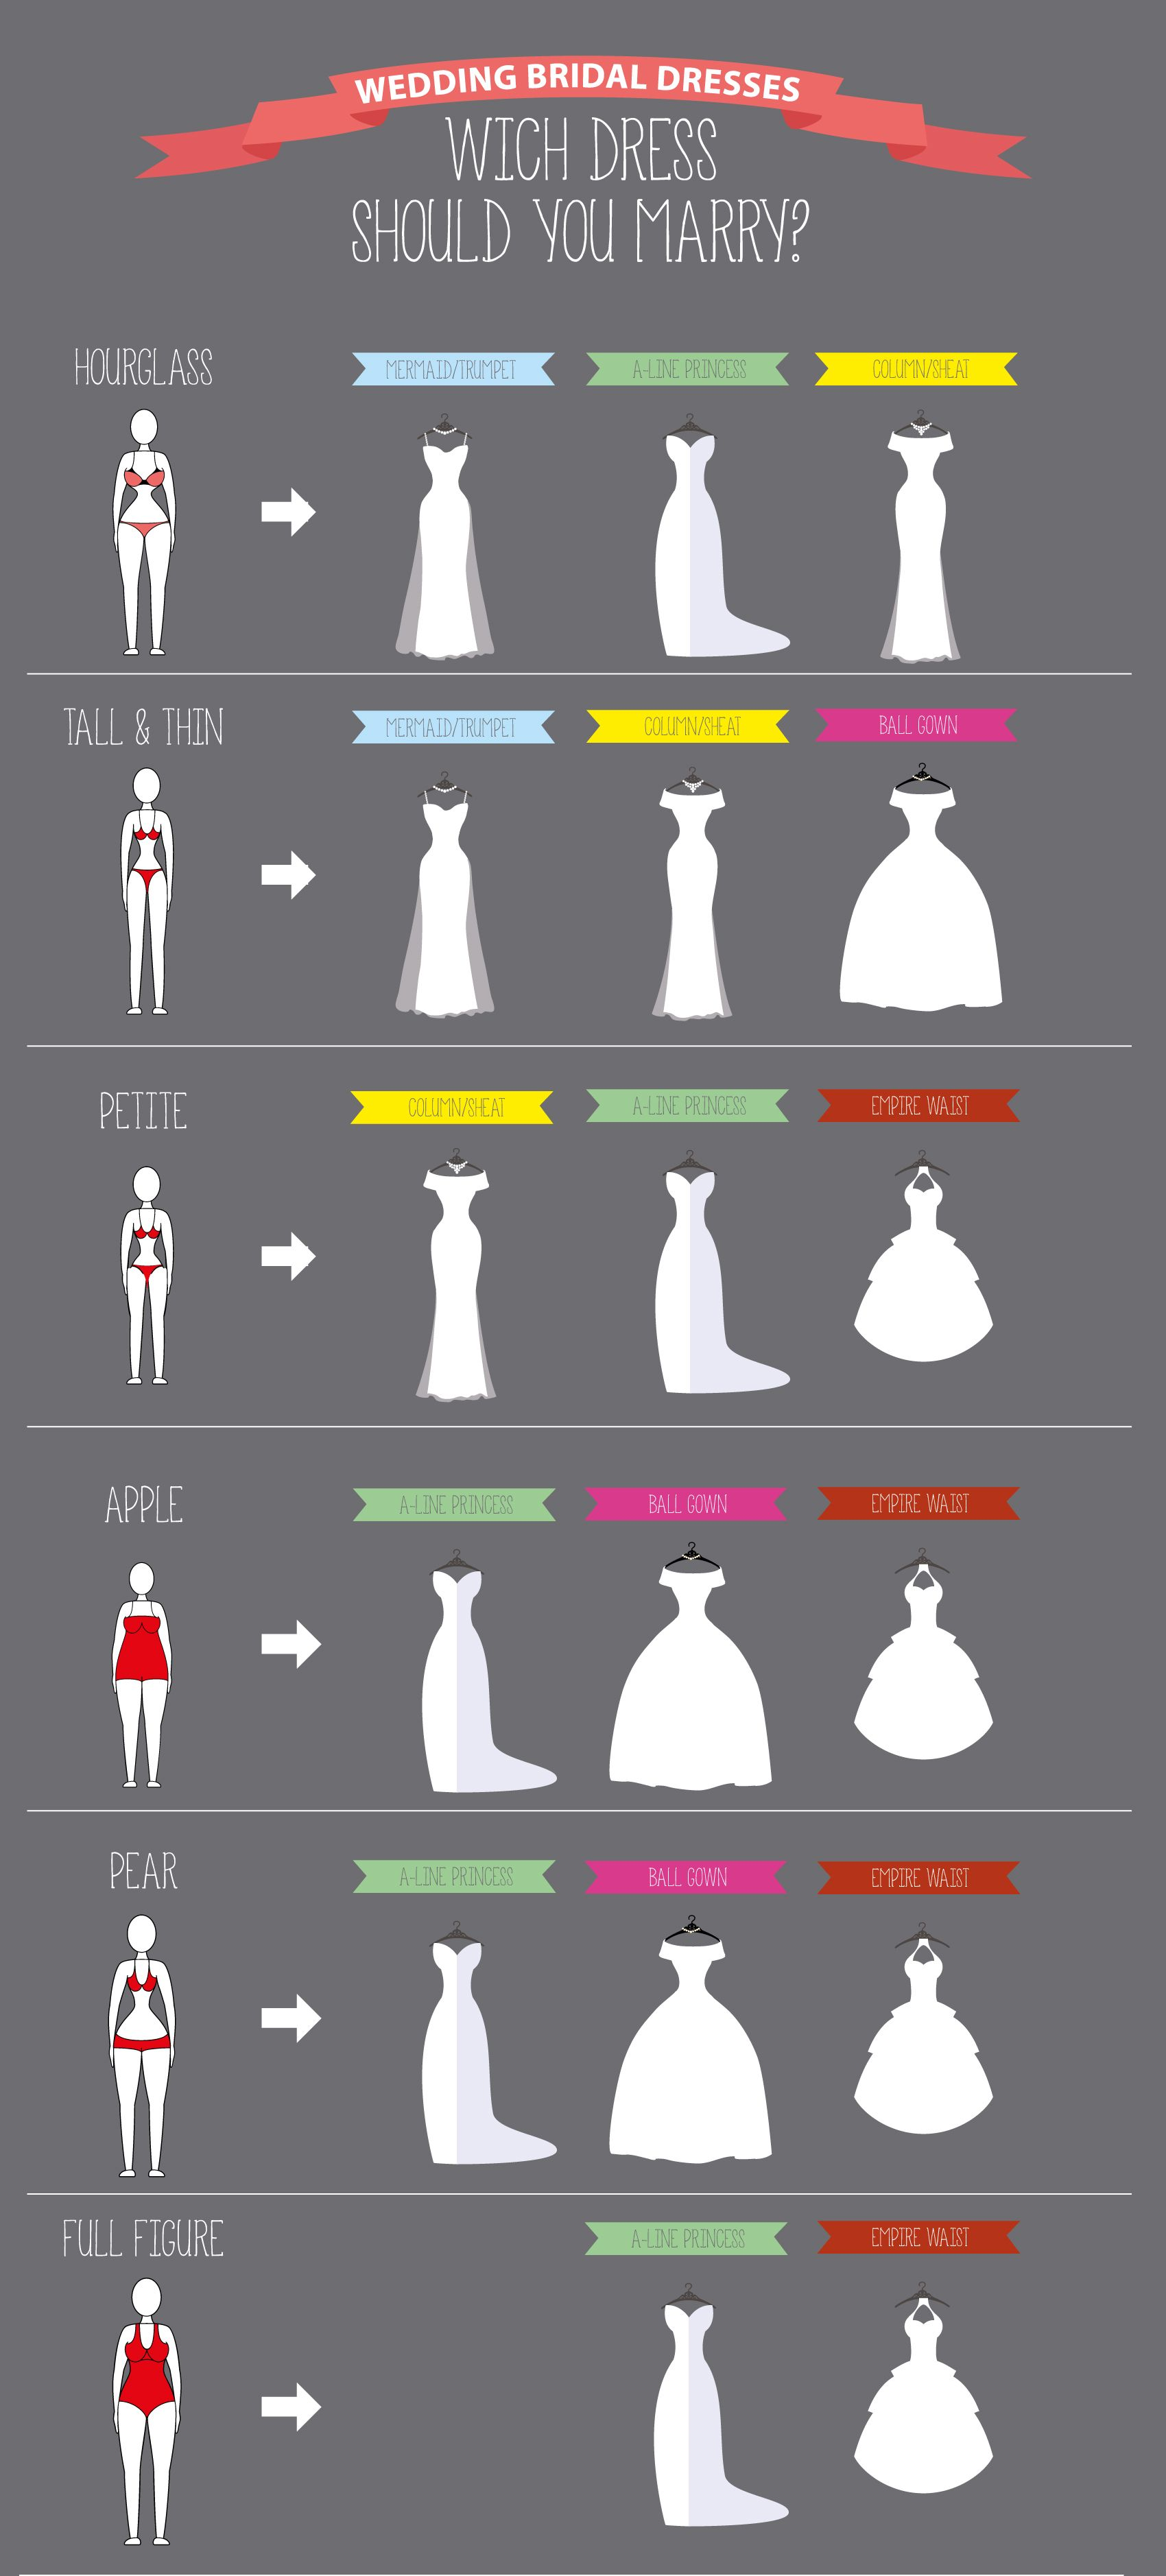 How To Guide Finding The Perfect Gown For Your Body Type Topweddingsites Com Wedding Dress Guide Pink Wedding Gowns Wedding Dresses